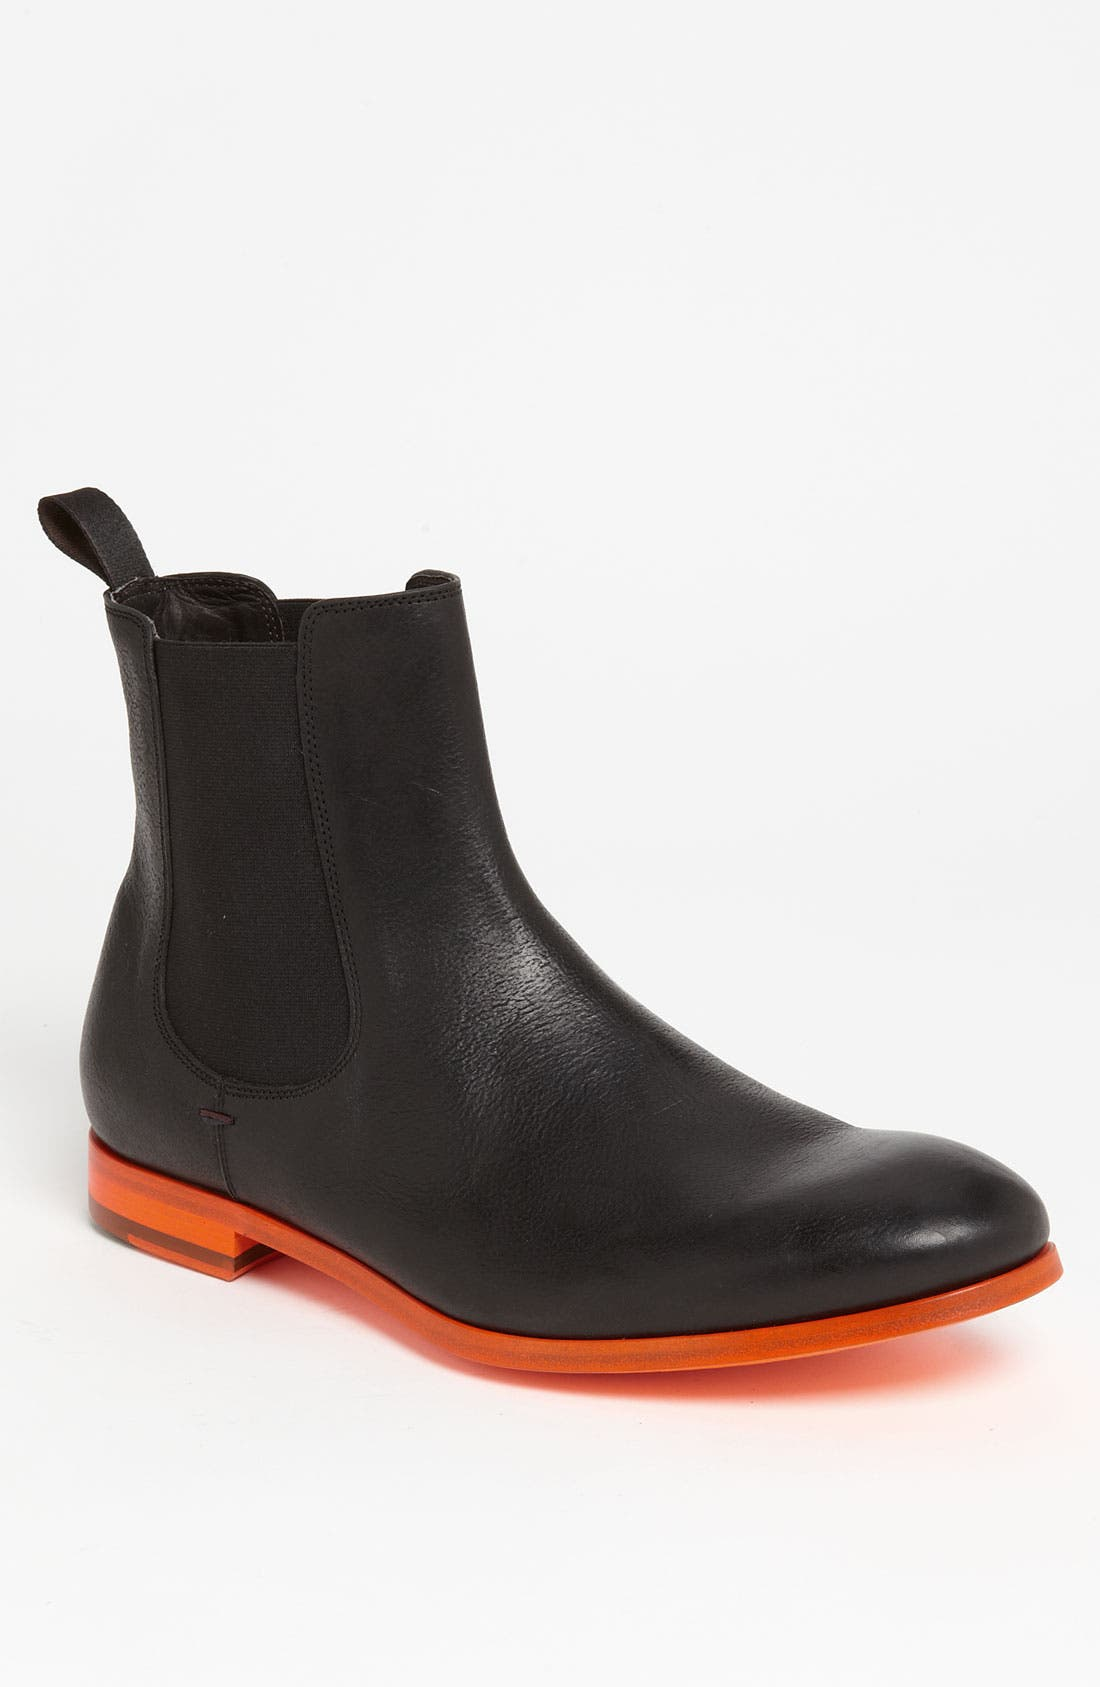 Alternate Image 1 Selected - Paul Smith 'Otter' Chelsea Boot